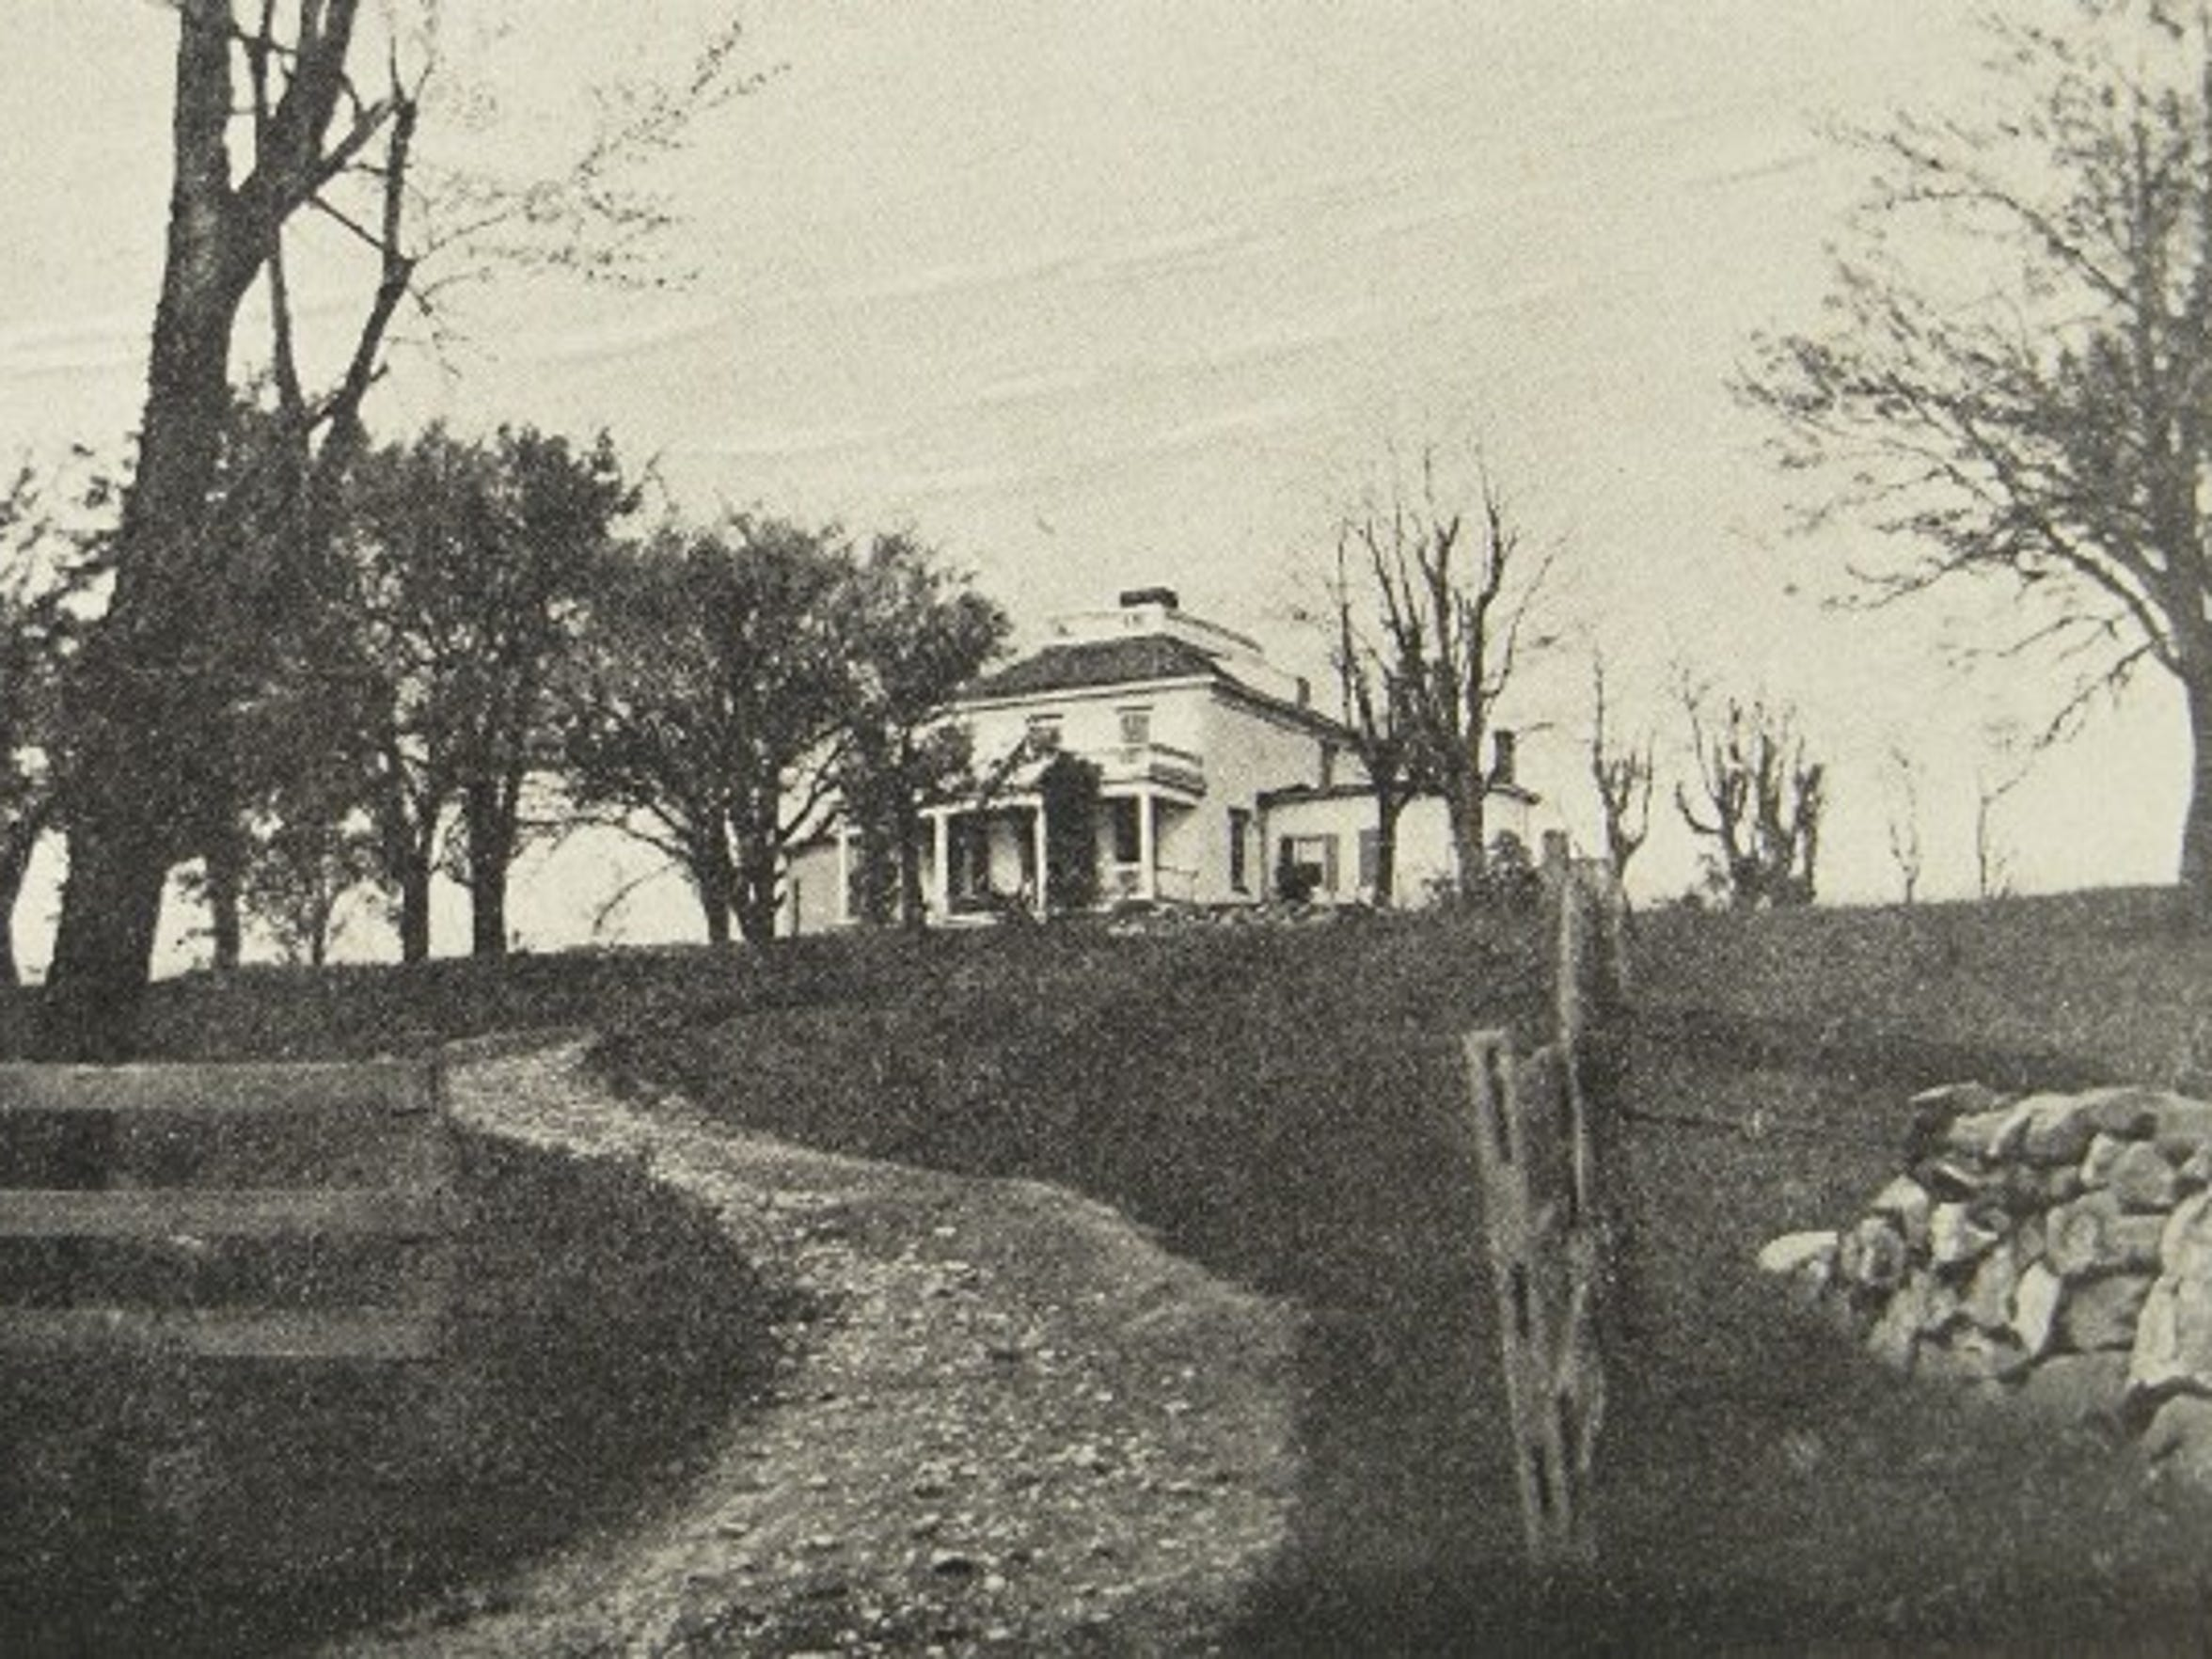 The Joshua Hett Smith House on Treason Hill in Haverstraw, Rockland County. Gen. Benedict Arnold and British Major John Andre held a clandestine meeting there to plot treason during the Revolutionary War.